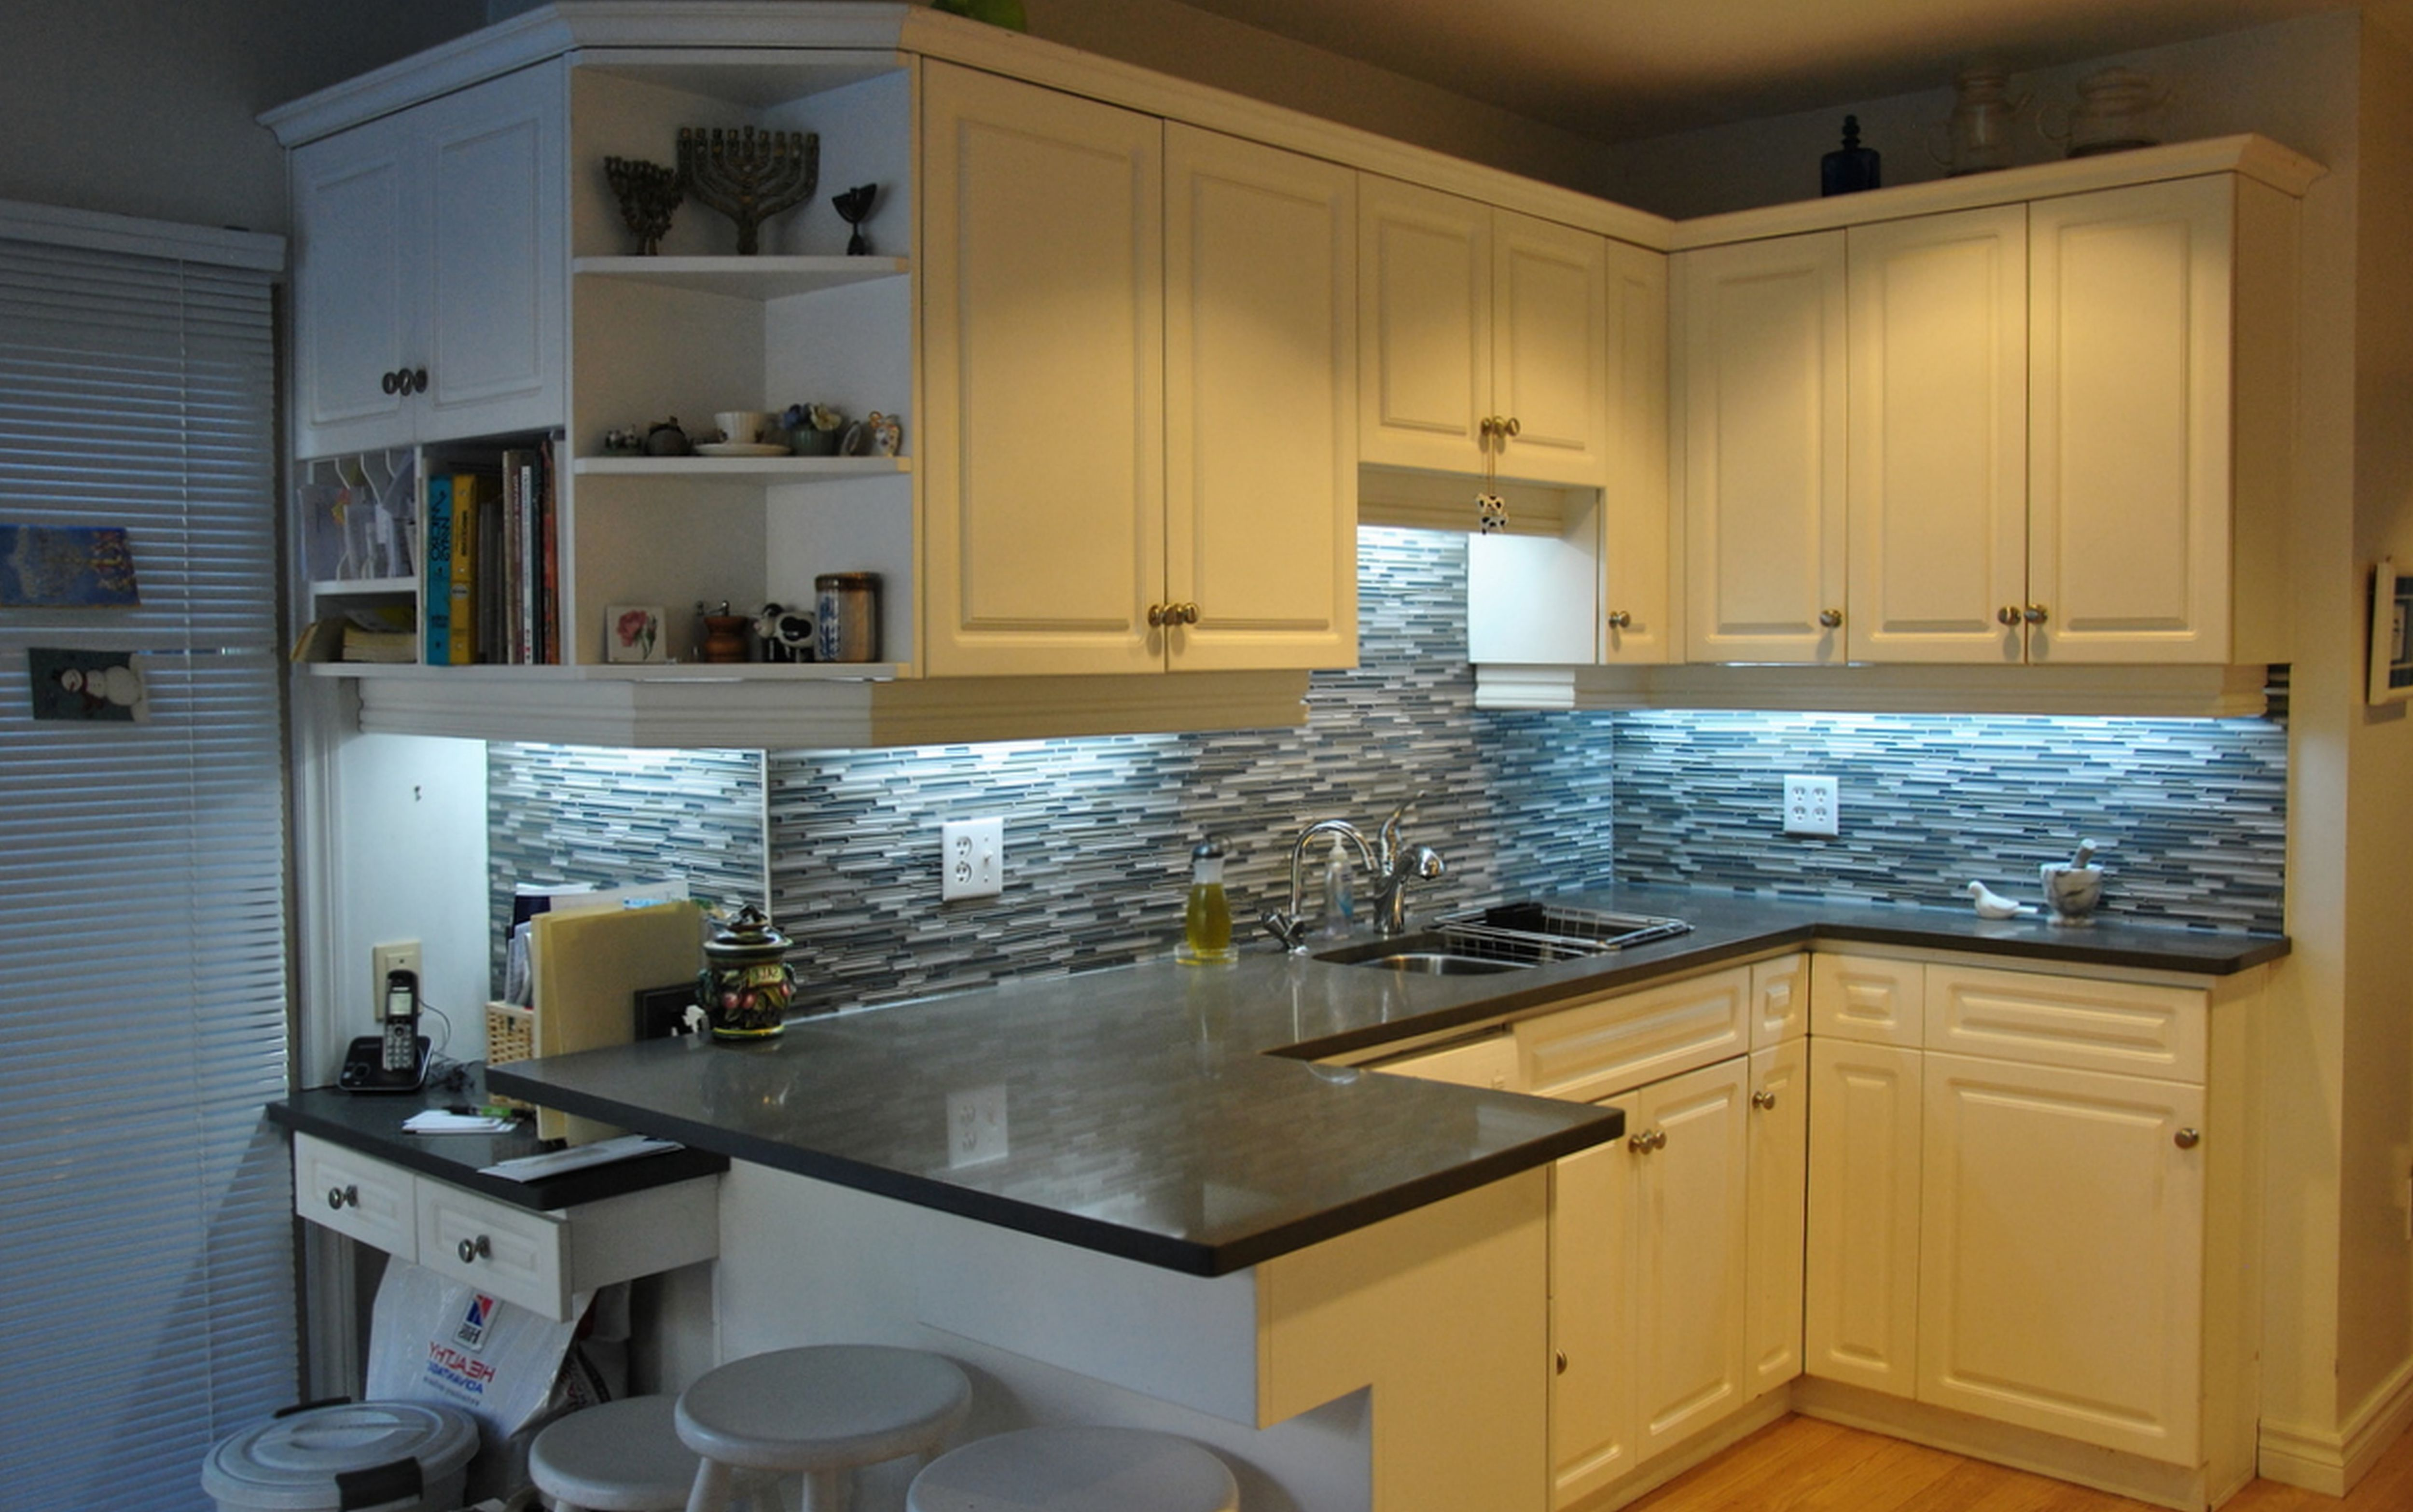 Nice    White Cabinets, Quartz Countertop. Backsplash Looks A Little Busy.